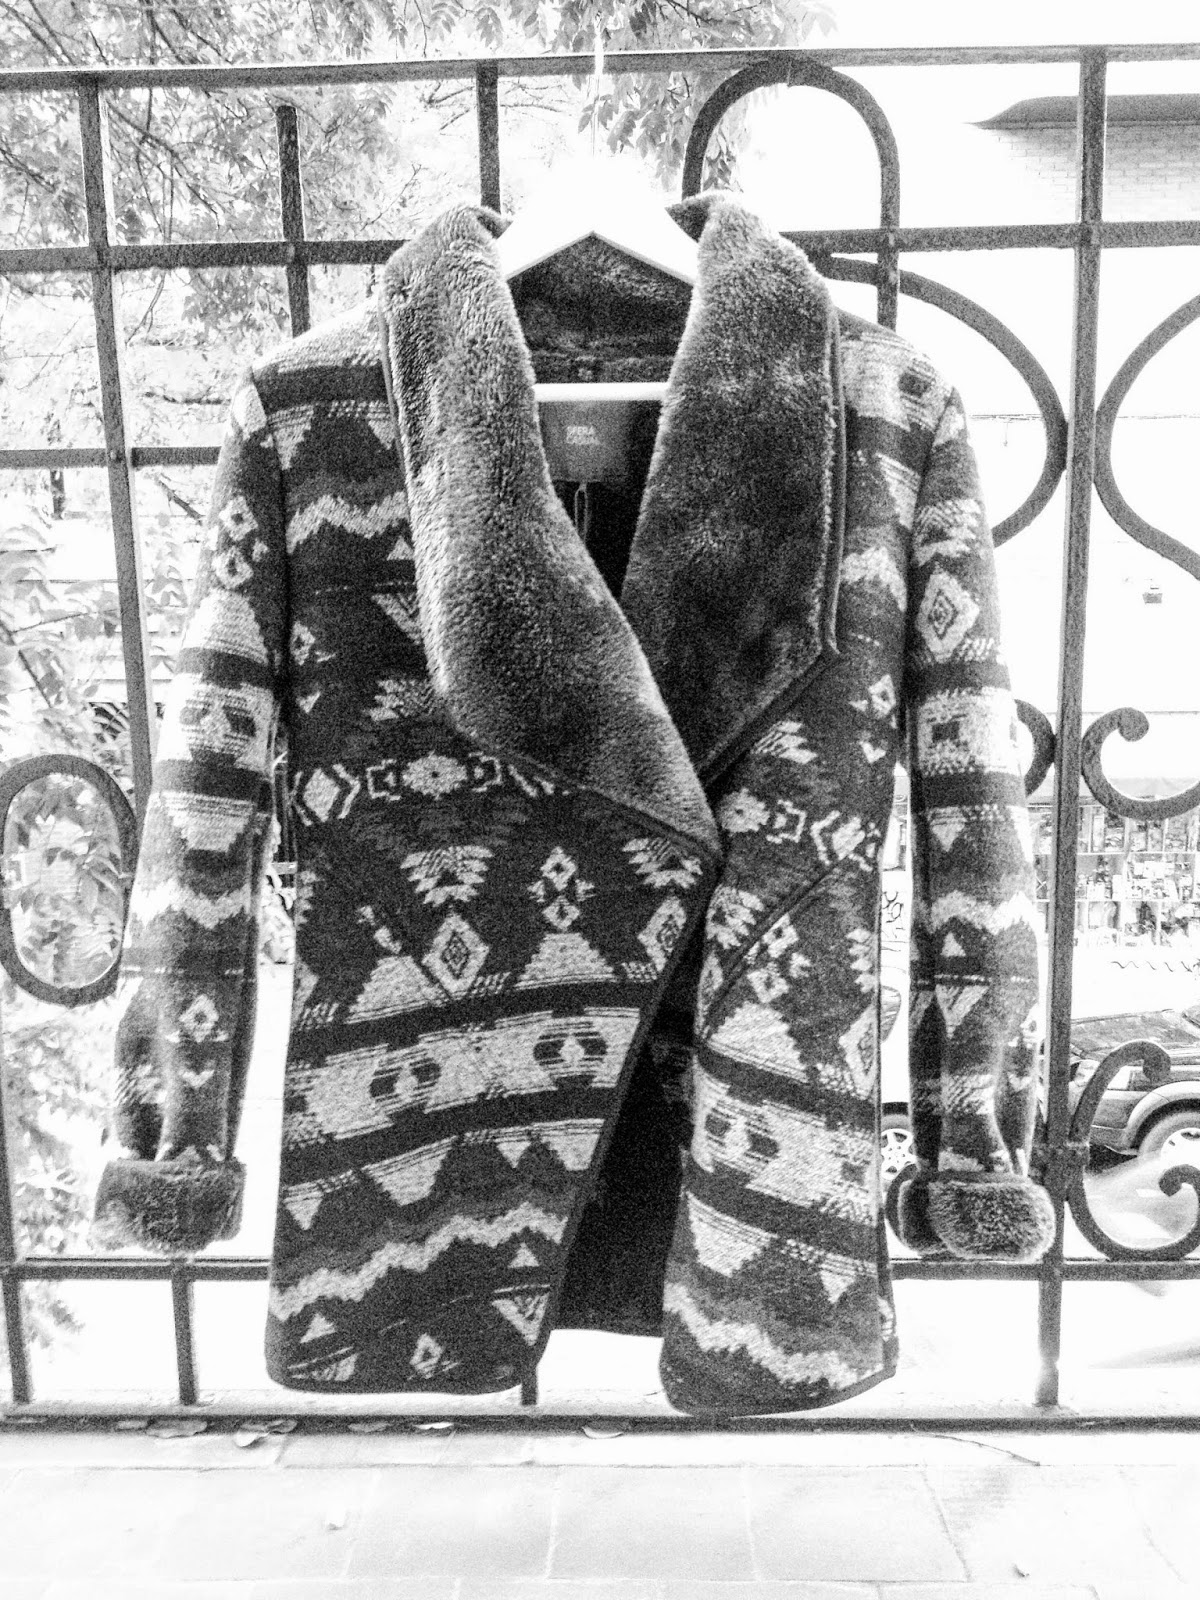 manteau coat azteque sfera fourrure details kaki whatsupdebs whats up debs